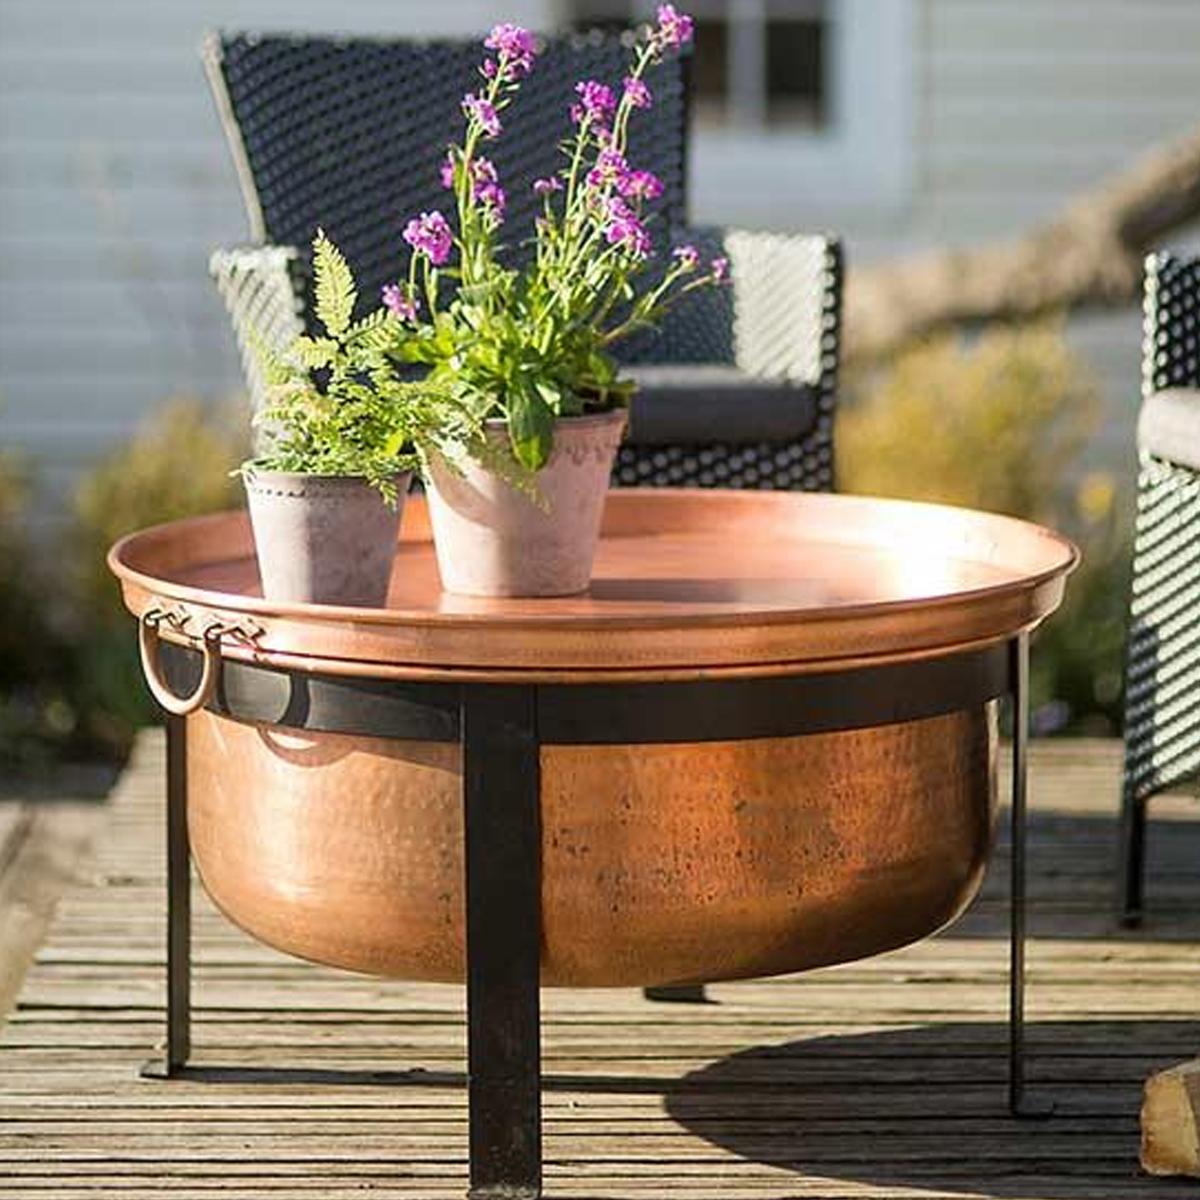 Stunning Copper Fire Pit That Also Doubles As A Table. Photo